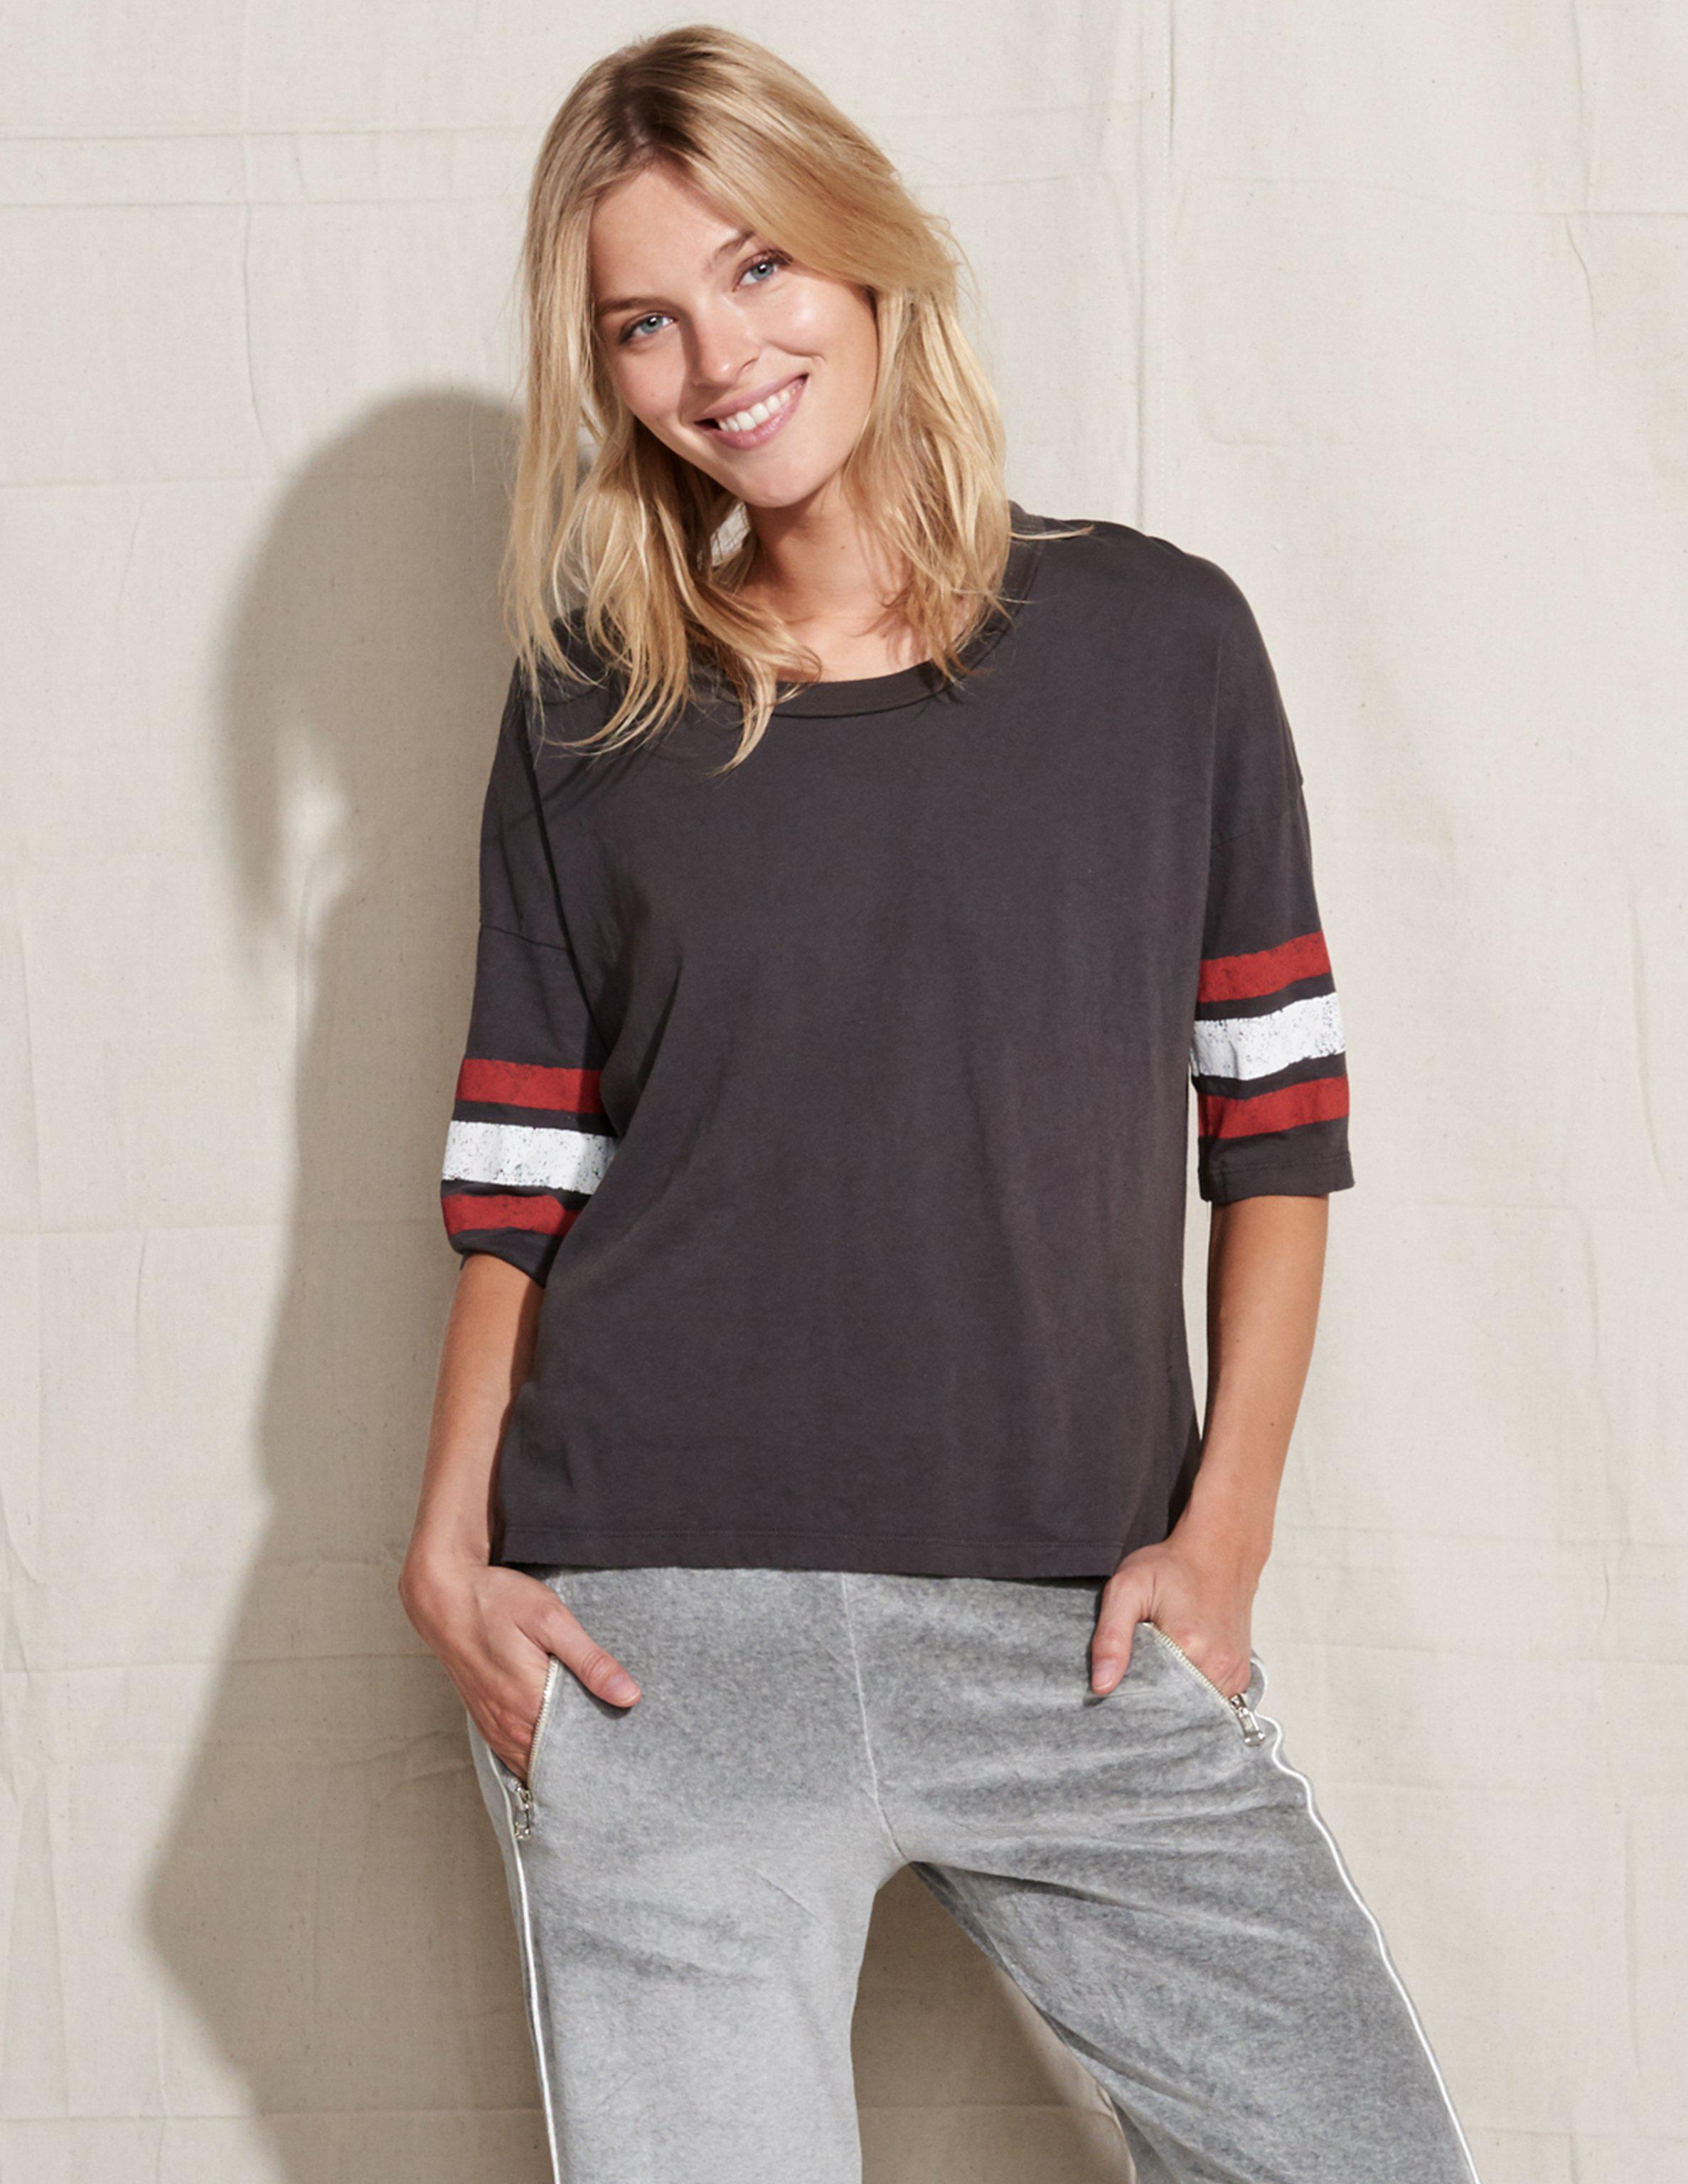 069d9f2dc07375 Sundry Athletic Stripes Oversized Tee in Black - Lyst